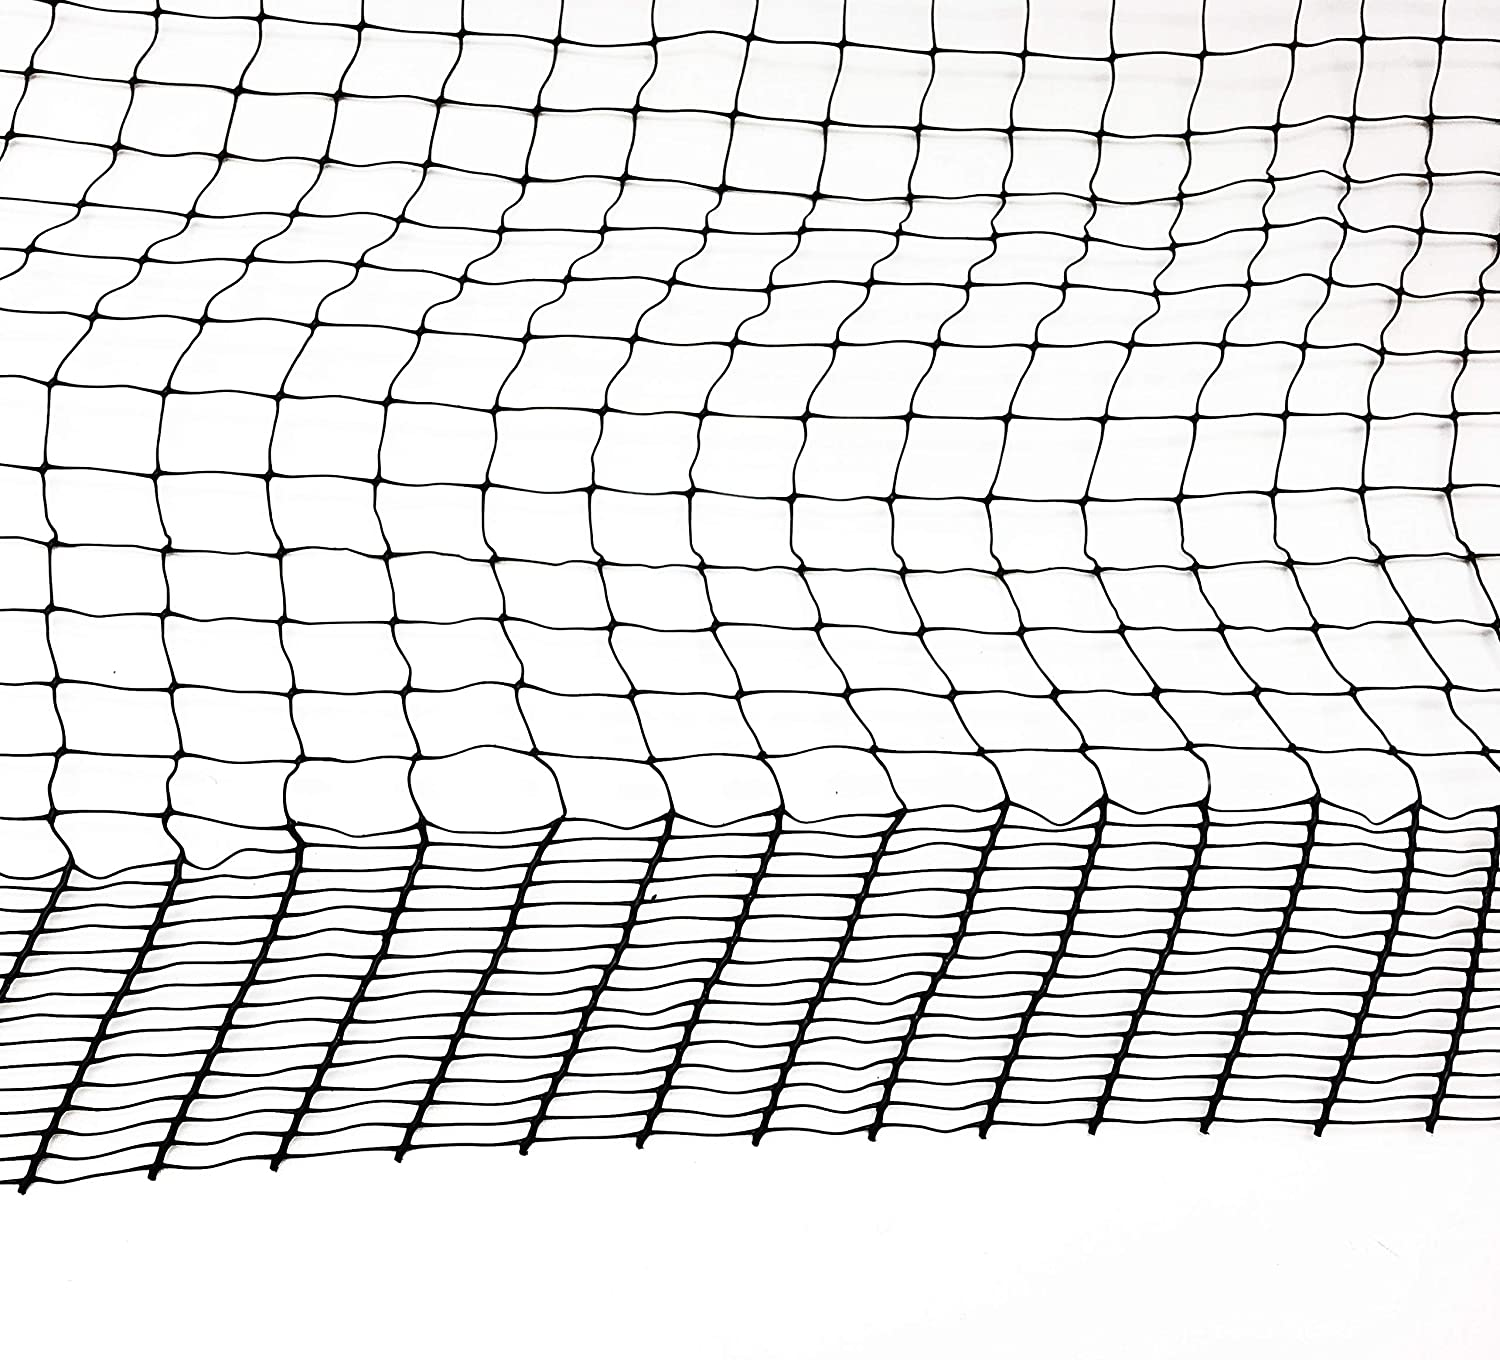 P.C Repellent Deer Netting and Fencing Protection for Animals and Trees 6.5FTx13FT Black